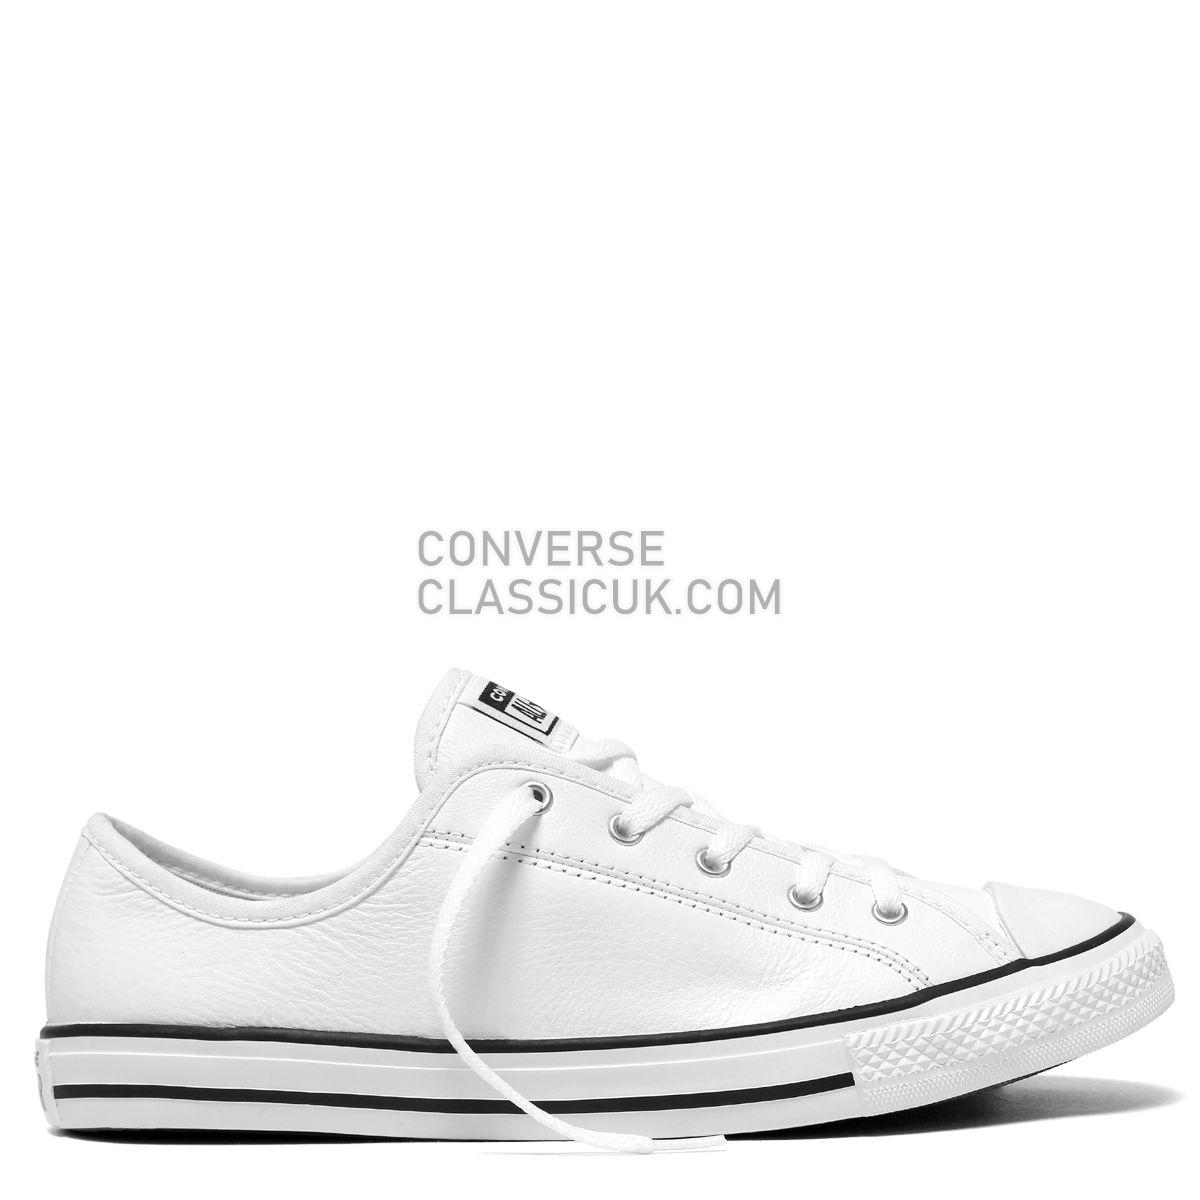 Converse Chuck Taylor All Star Dainty Leather Low Top White Womens 564984 White/Black/White Shoes